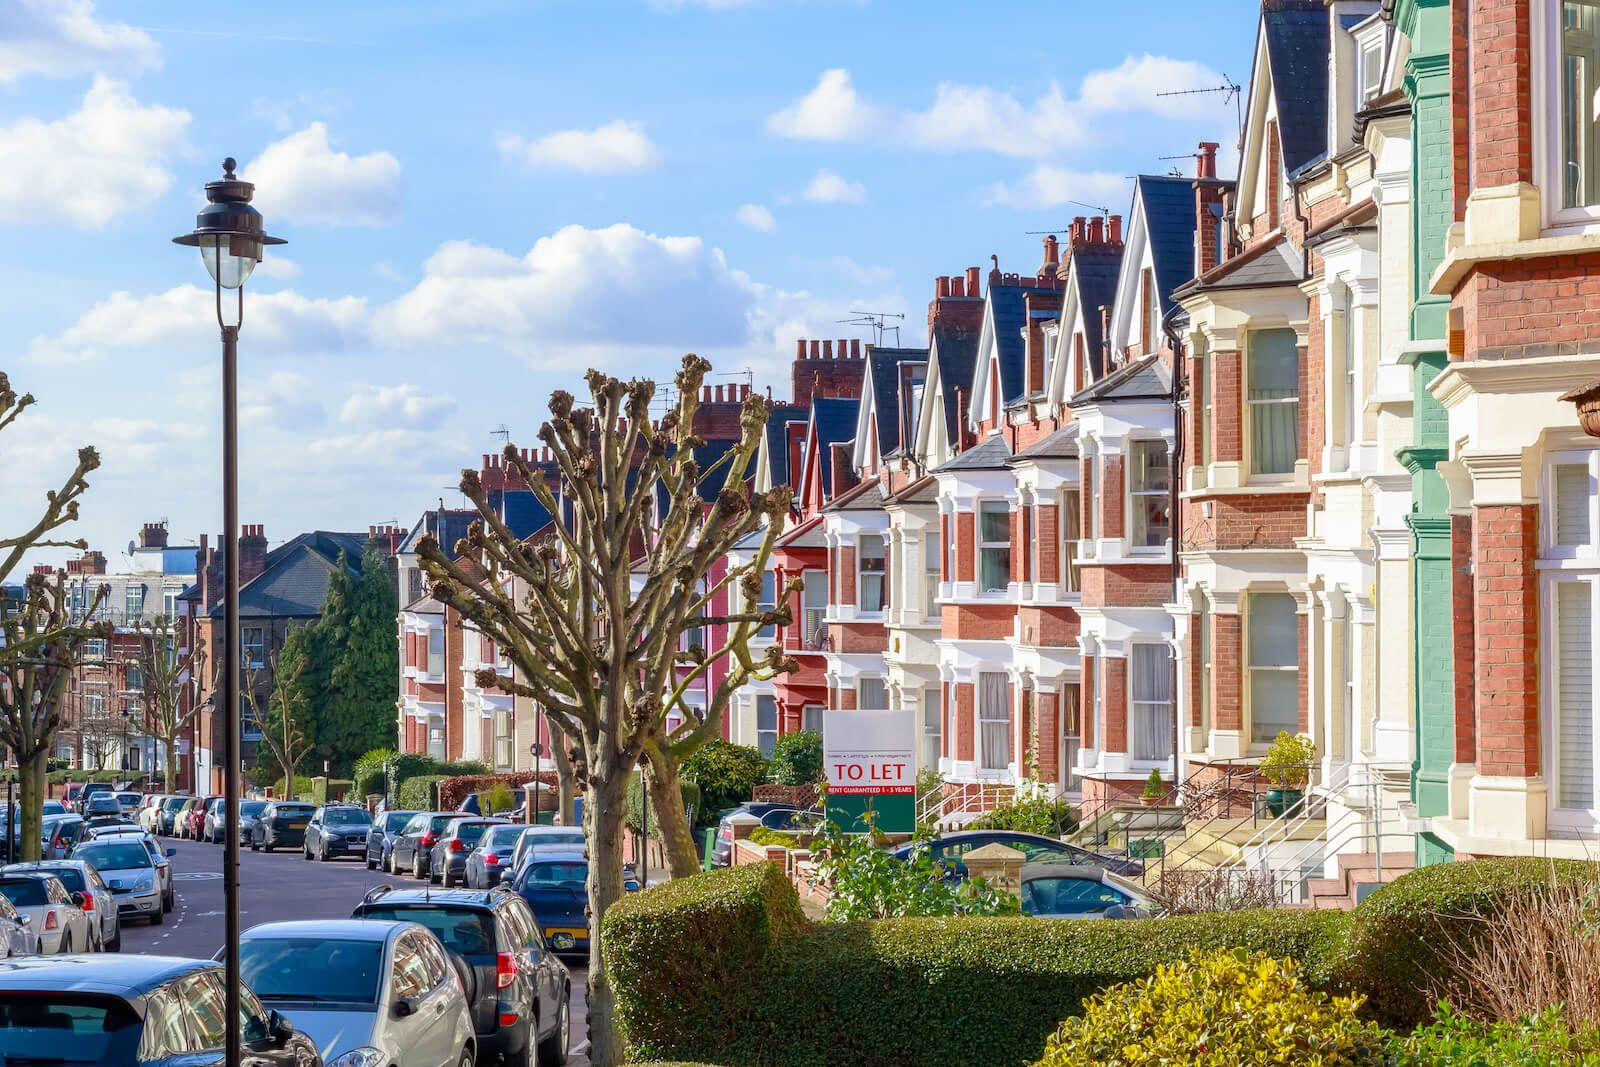 UK Rental Market: Rents Continue to Rise as Demand Remains High